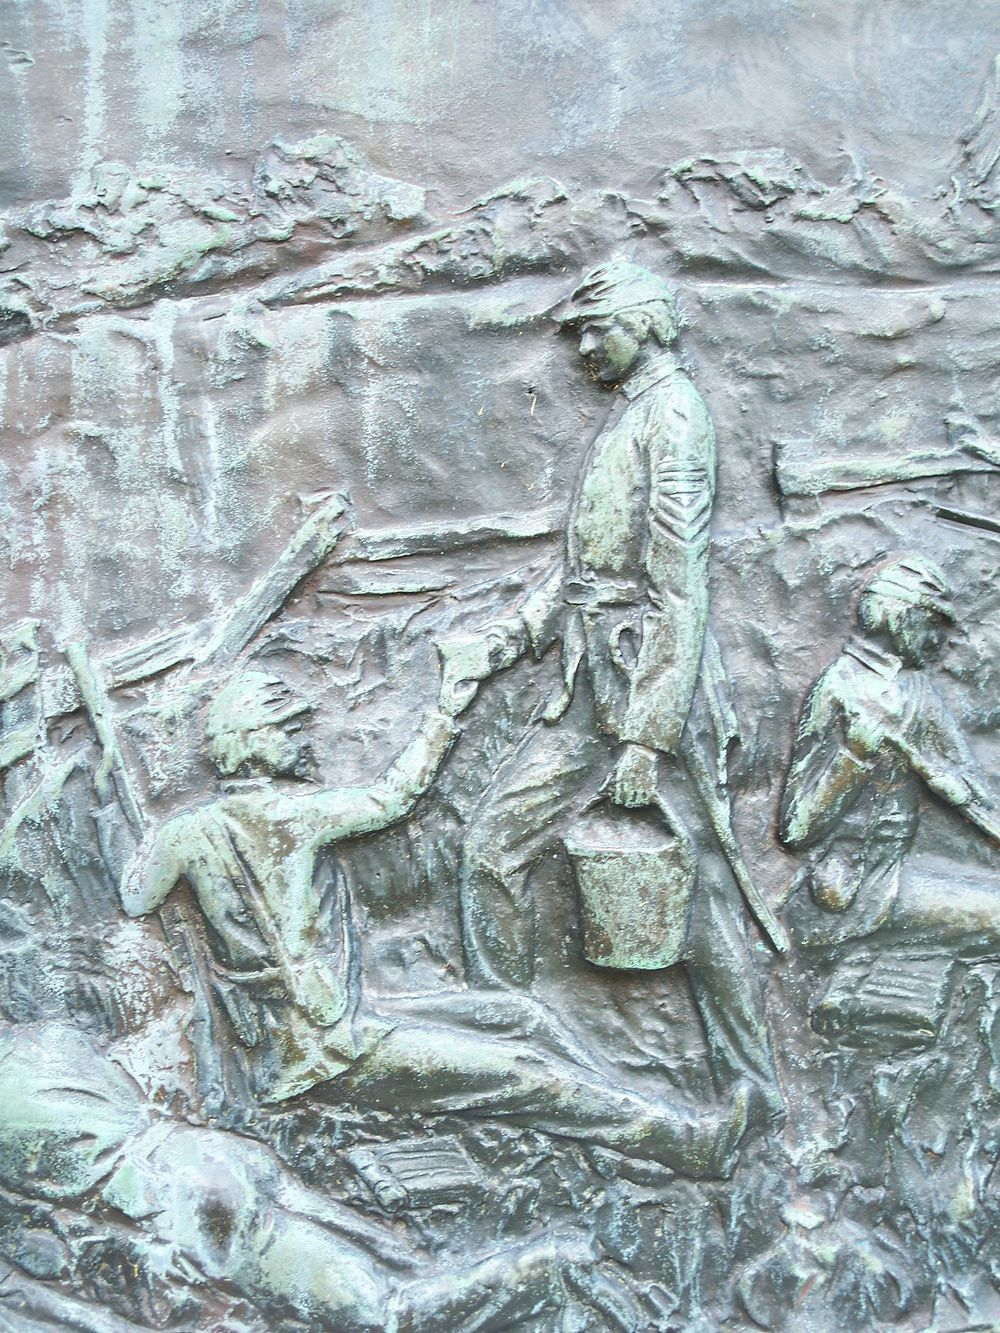 This relief tablet depicts McKinley bringing coffee to tired and wounded solders during the battle.